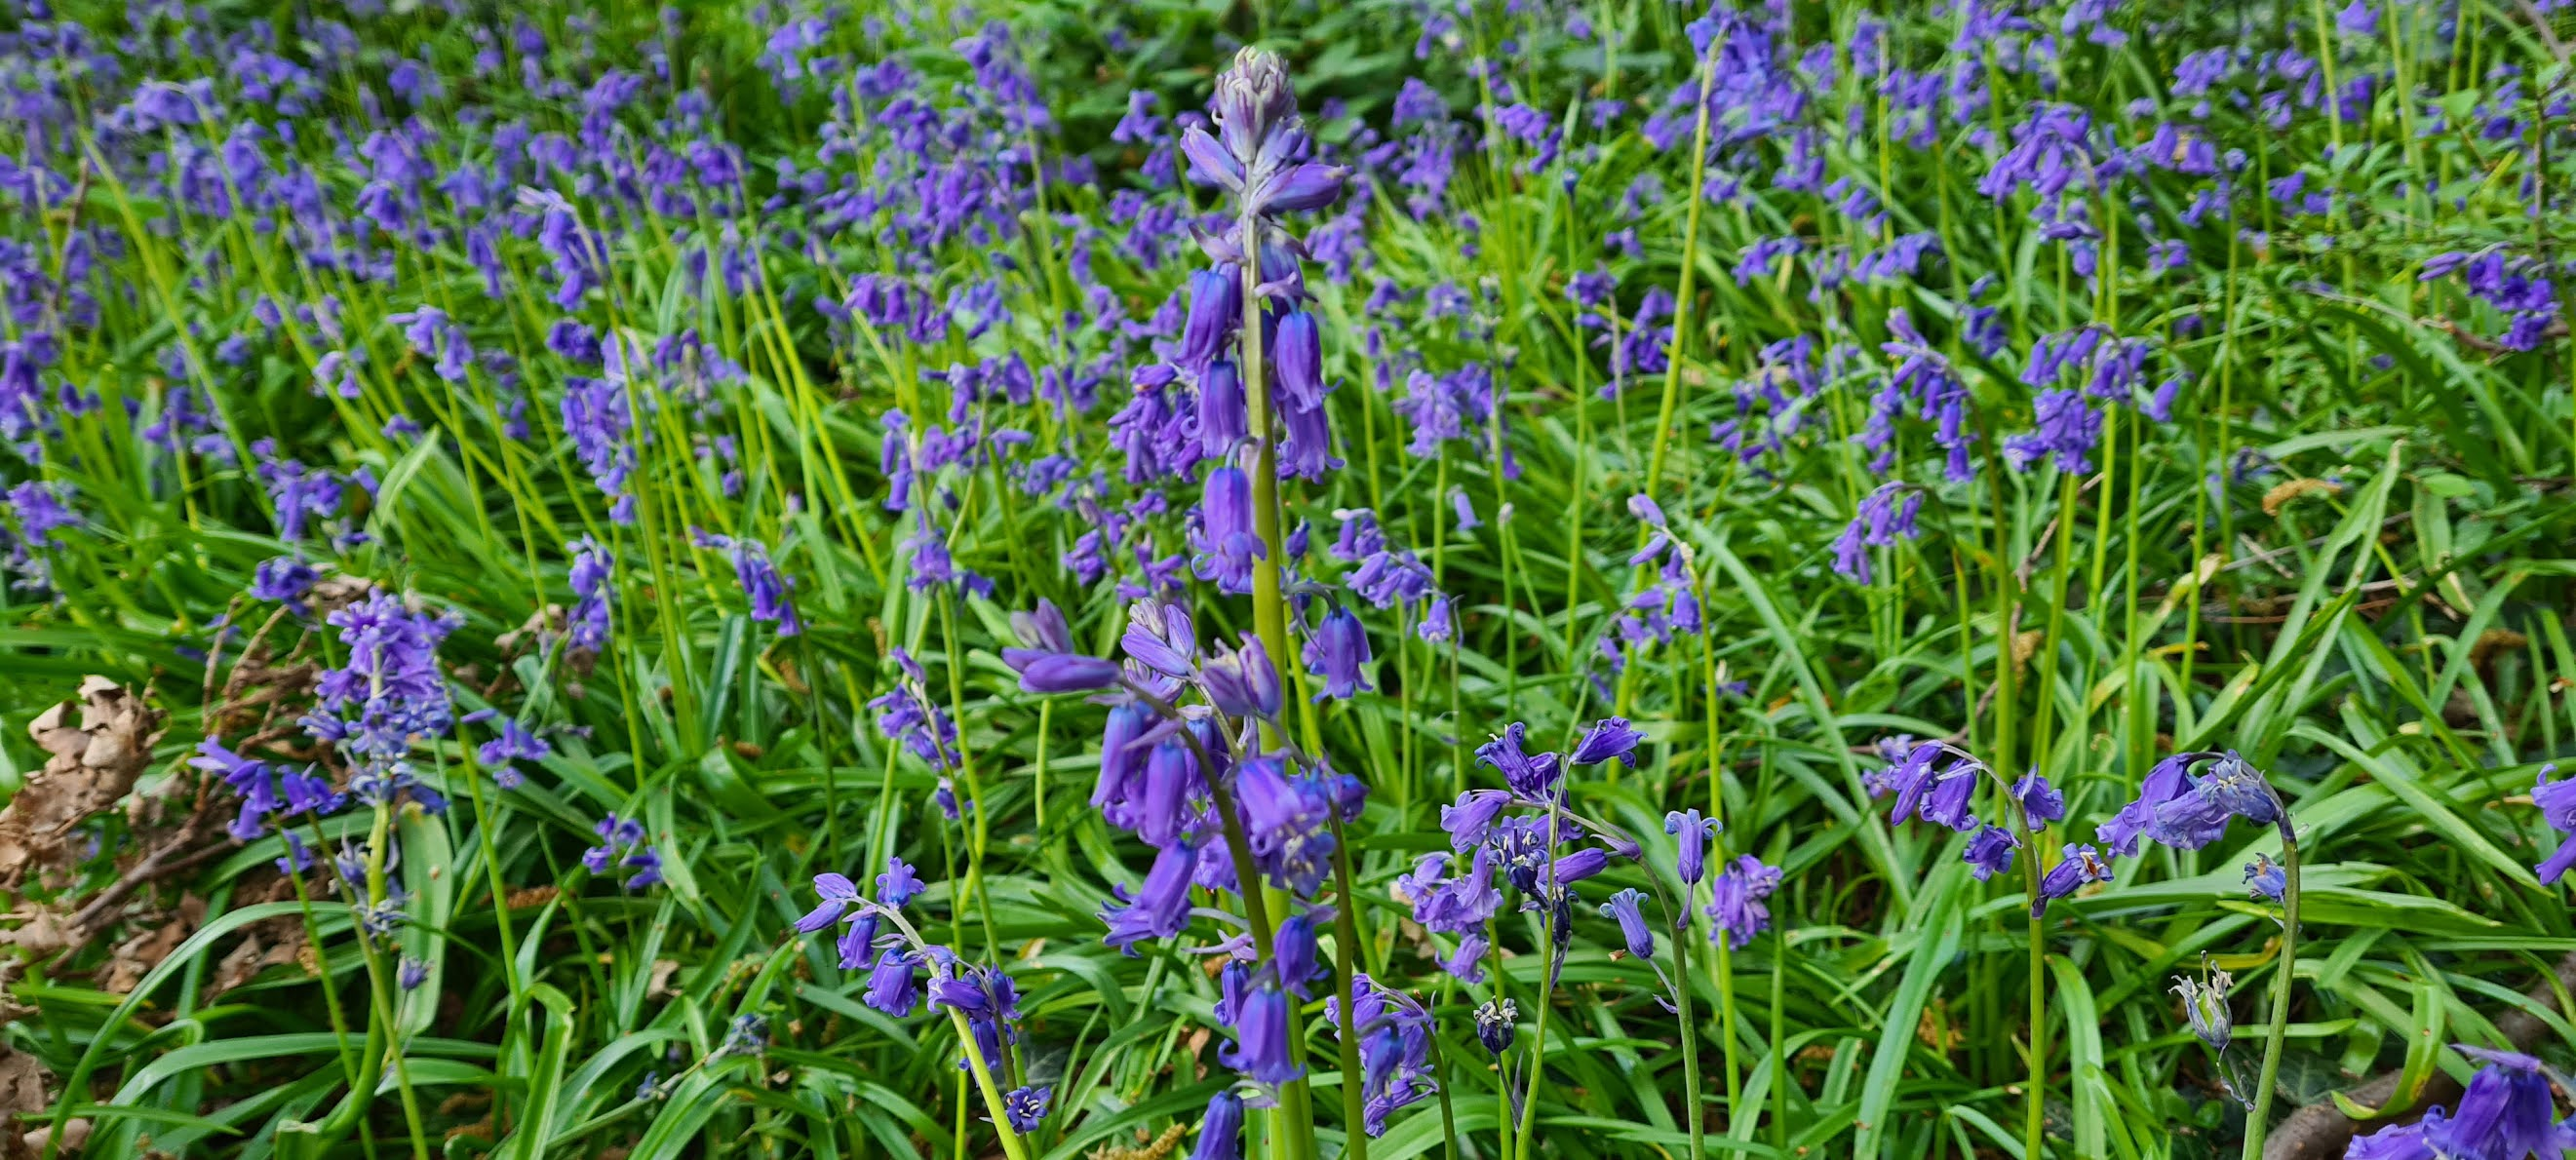 Bluebells in Larkswood East London, April 2021